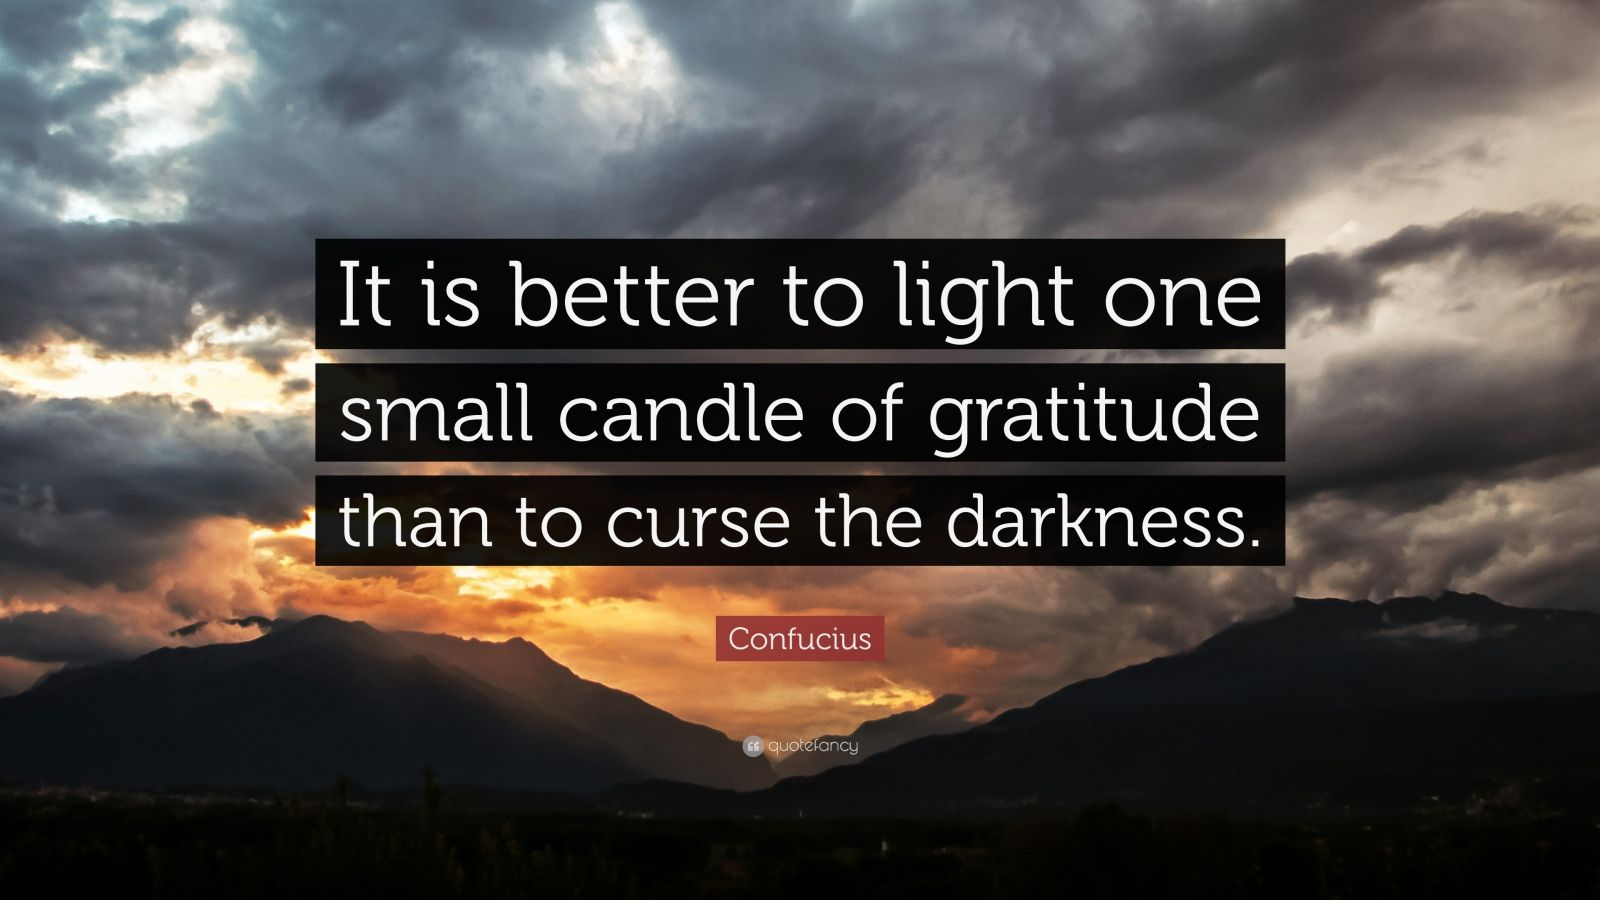 """It is better to light one small candle of gratitude than to curse the darkness."" – Confucius [1600×900]"